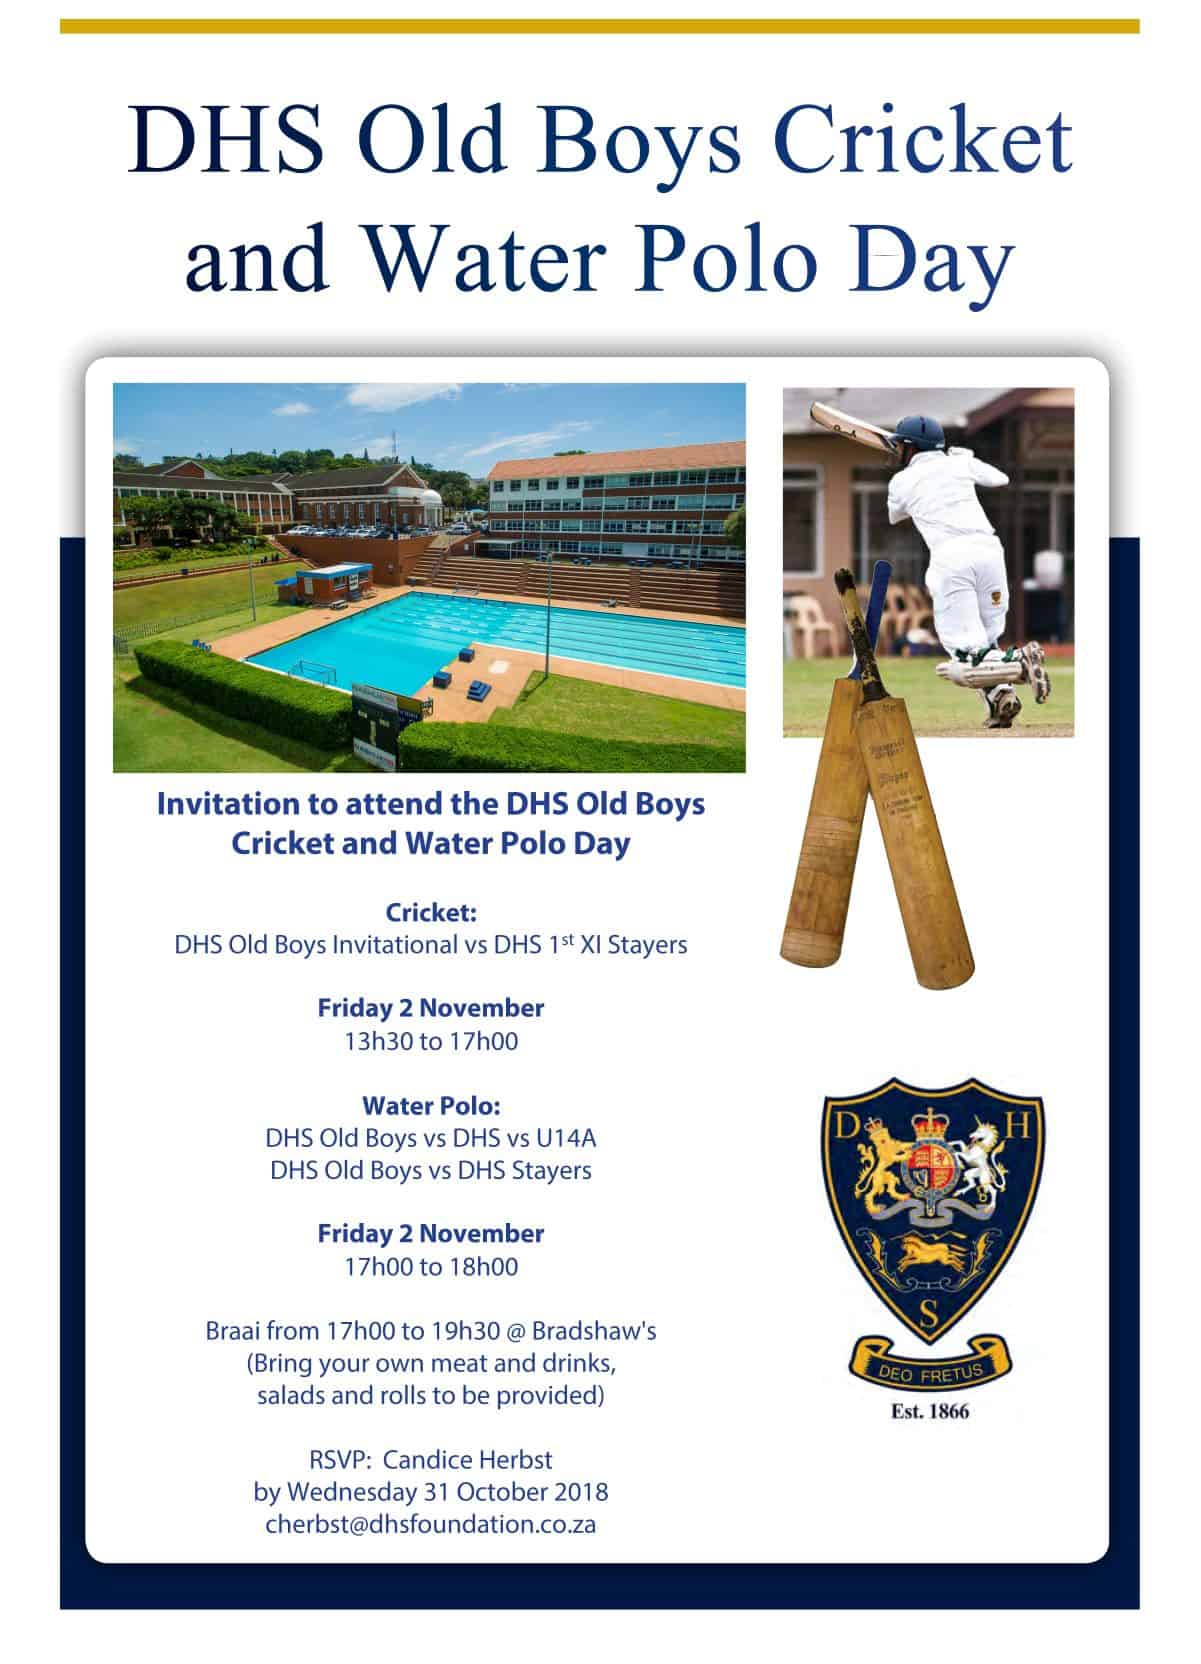 The DHS Old Boys Cricket and Water Polo Day 22 Sept 2018